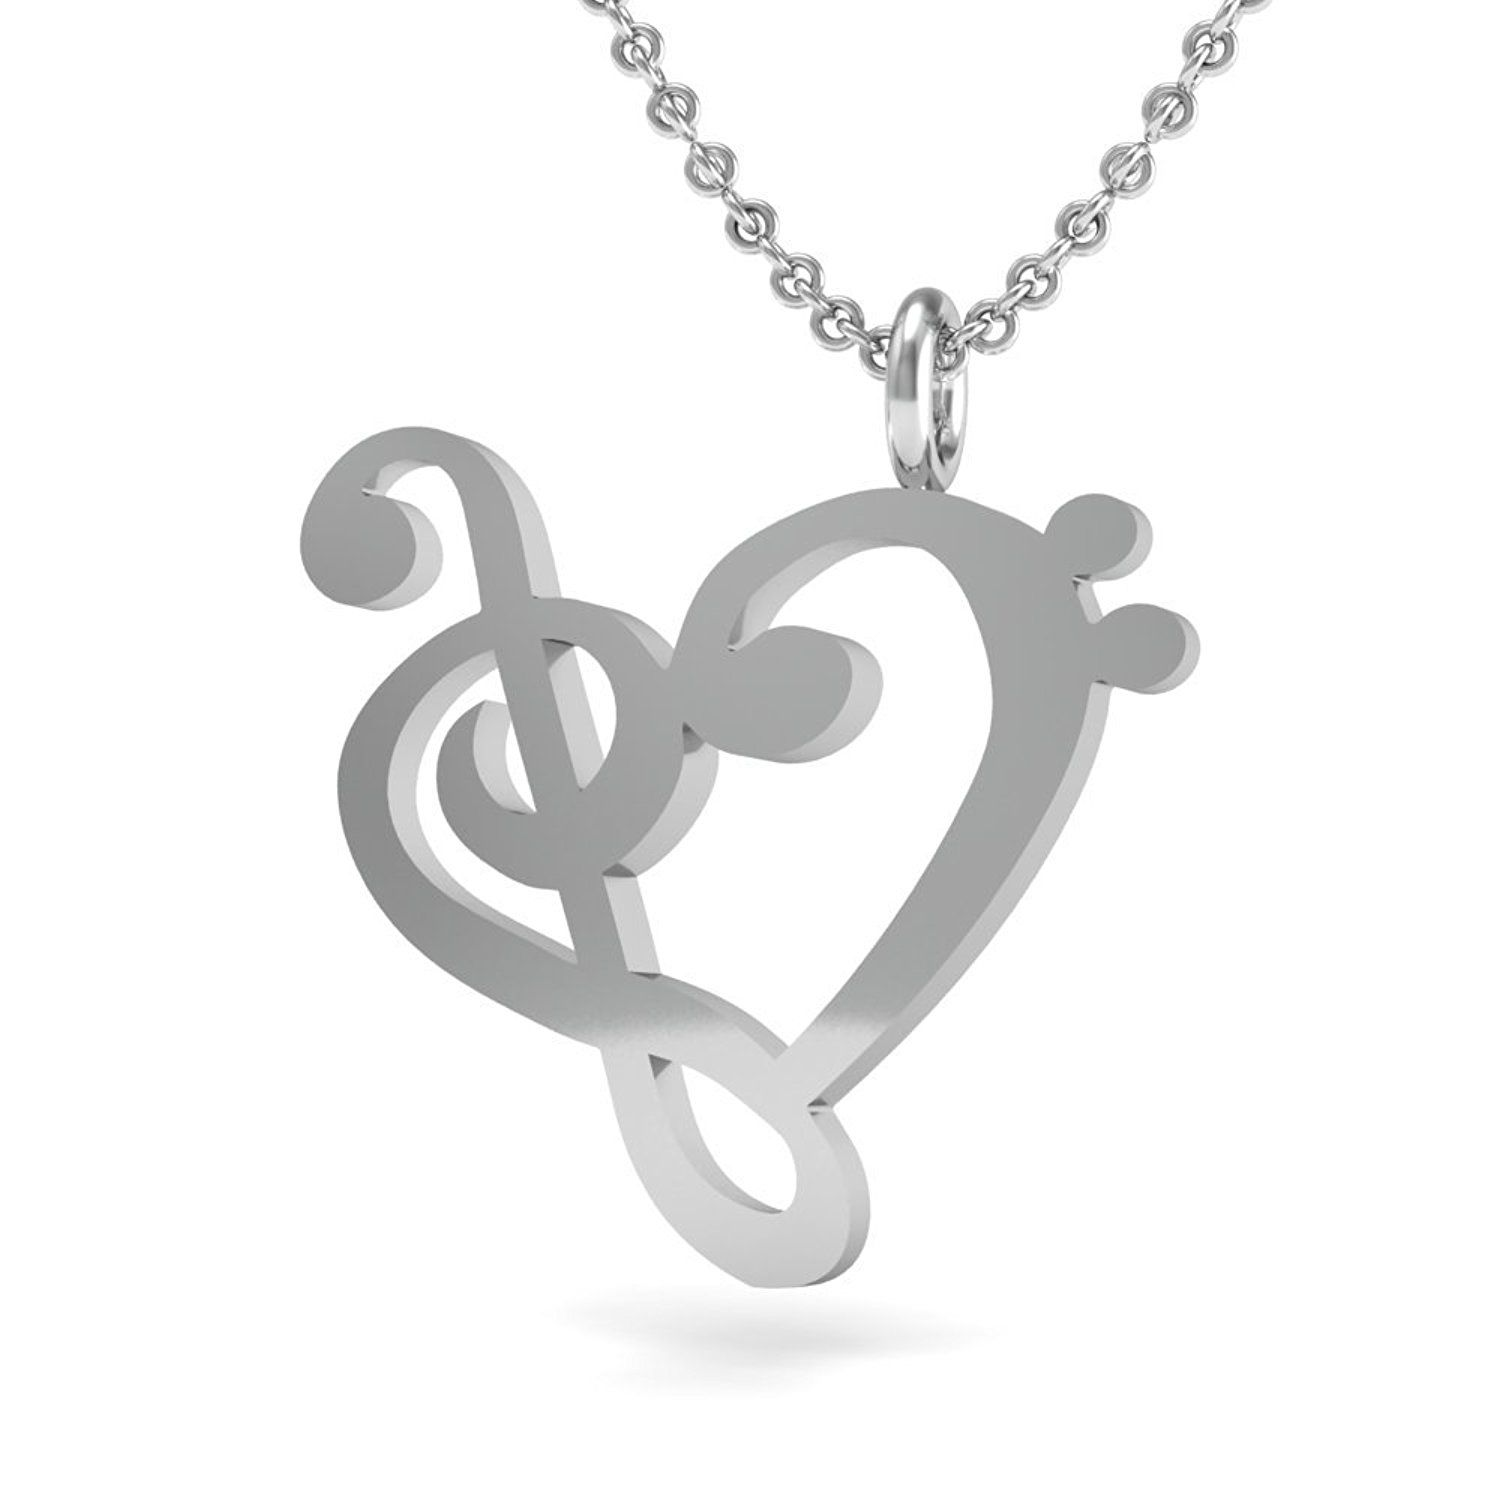 The Best Music Note Pendant Necklace 925 Sterling Silver 18 Inch